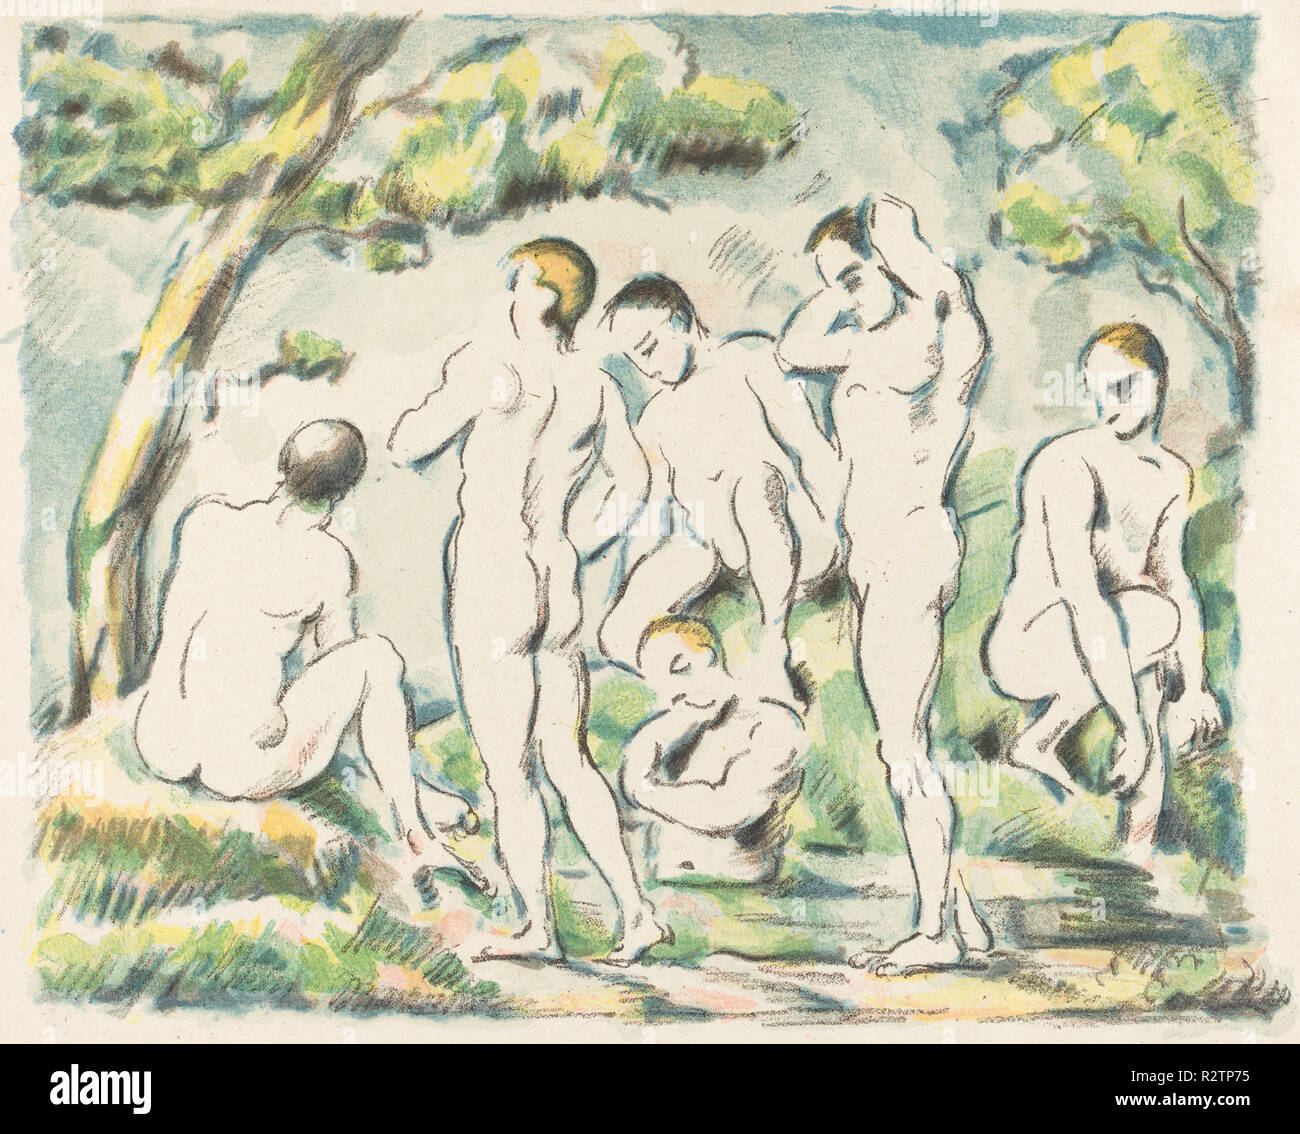 The Bathers (Small Plate). Dated: 1897. Dimensions: overall: 23.6 x 29.1 cm (9 5/16 x 11 7/16 in.). Medium: color lithograph on china paper. Museum: National Gallery of Art, Washington DC. Author: PAUL CEZANNE. CEZANNE, PAUL. - Stock Image